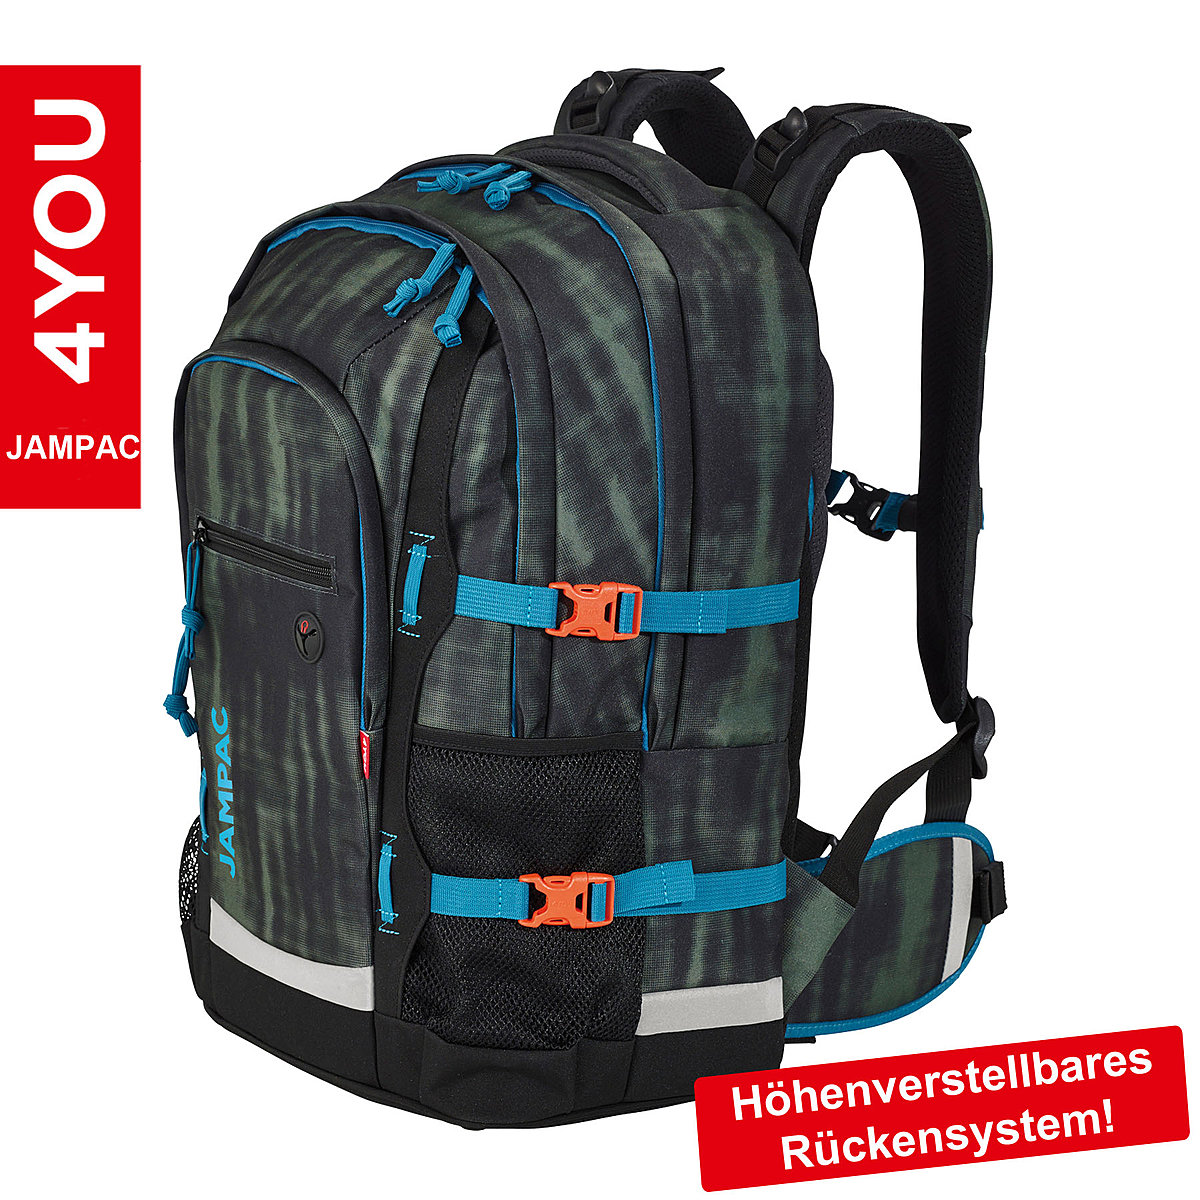 4you schulrucksack jampac lizard 30 liter volumen und laptopfach. Black Bedroom Furniture Sets. Home Design Ideas